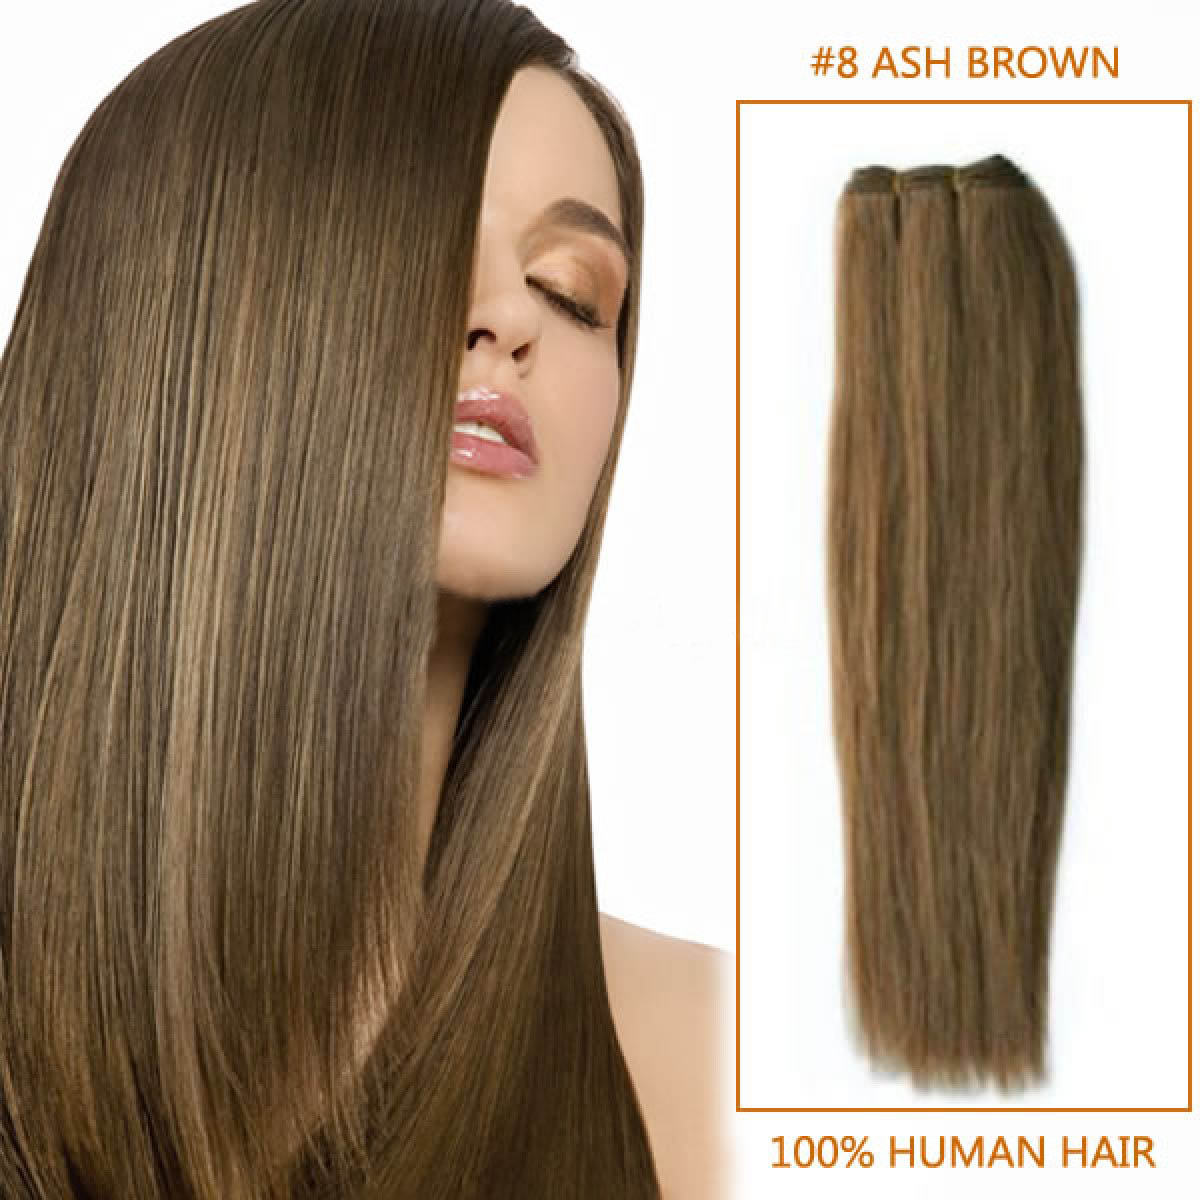 22 Inch 8 Ash Brown Straight Indian Remy Hair Wefts